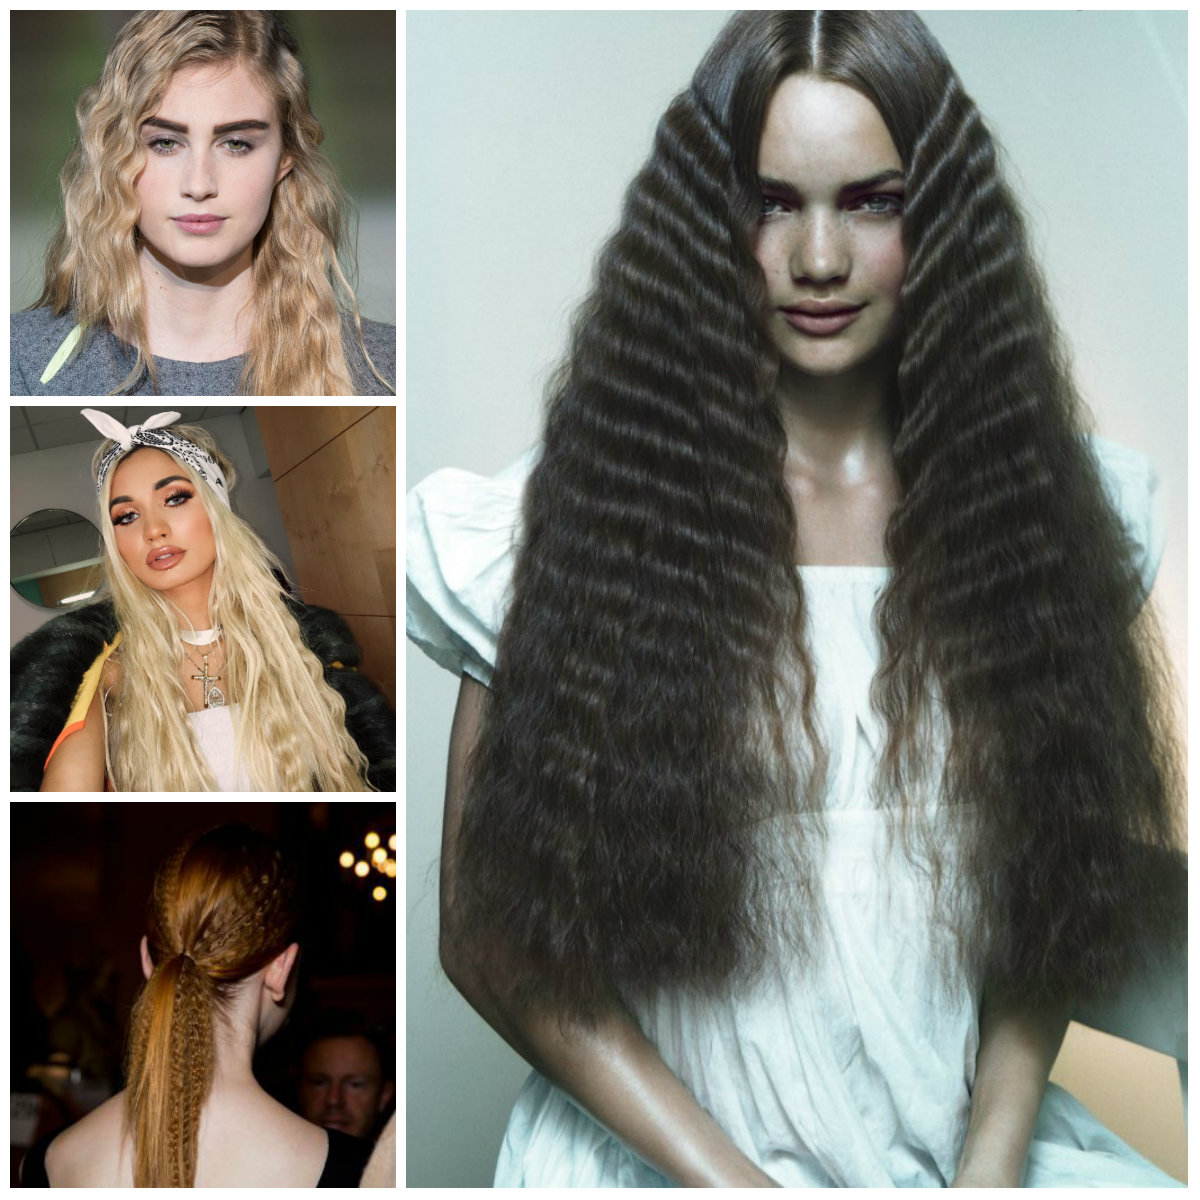 """Retro inspired ruffled hairstyles """"width ="""" 500 """"height ="""" 500 """"data-jpibfi-post-excerpt ="""" """"data-jpibfi-post-url ="""" http://www.frisuren-2018.com/retro-inspired- frizzy-hairstyles / """"data-jpibfi-post-title ="""" Retro inspired curly hairstyles """"data-jpibfi-src ="""" http://www.frisuren-2018.com/wp-content/uploads/2019/05/Retro- inspired-ruffled-Frisuren.jpg """"/></p> <p>I should admit that modern crimps look a lot better. Nowadays, there are special hair clips that produce excellent curly hairstyles. Just look at the following ruffled hairstyles and get ready to rock one of them.<span id="""